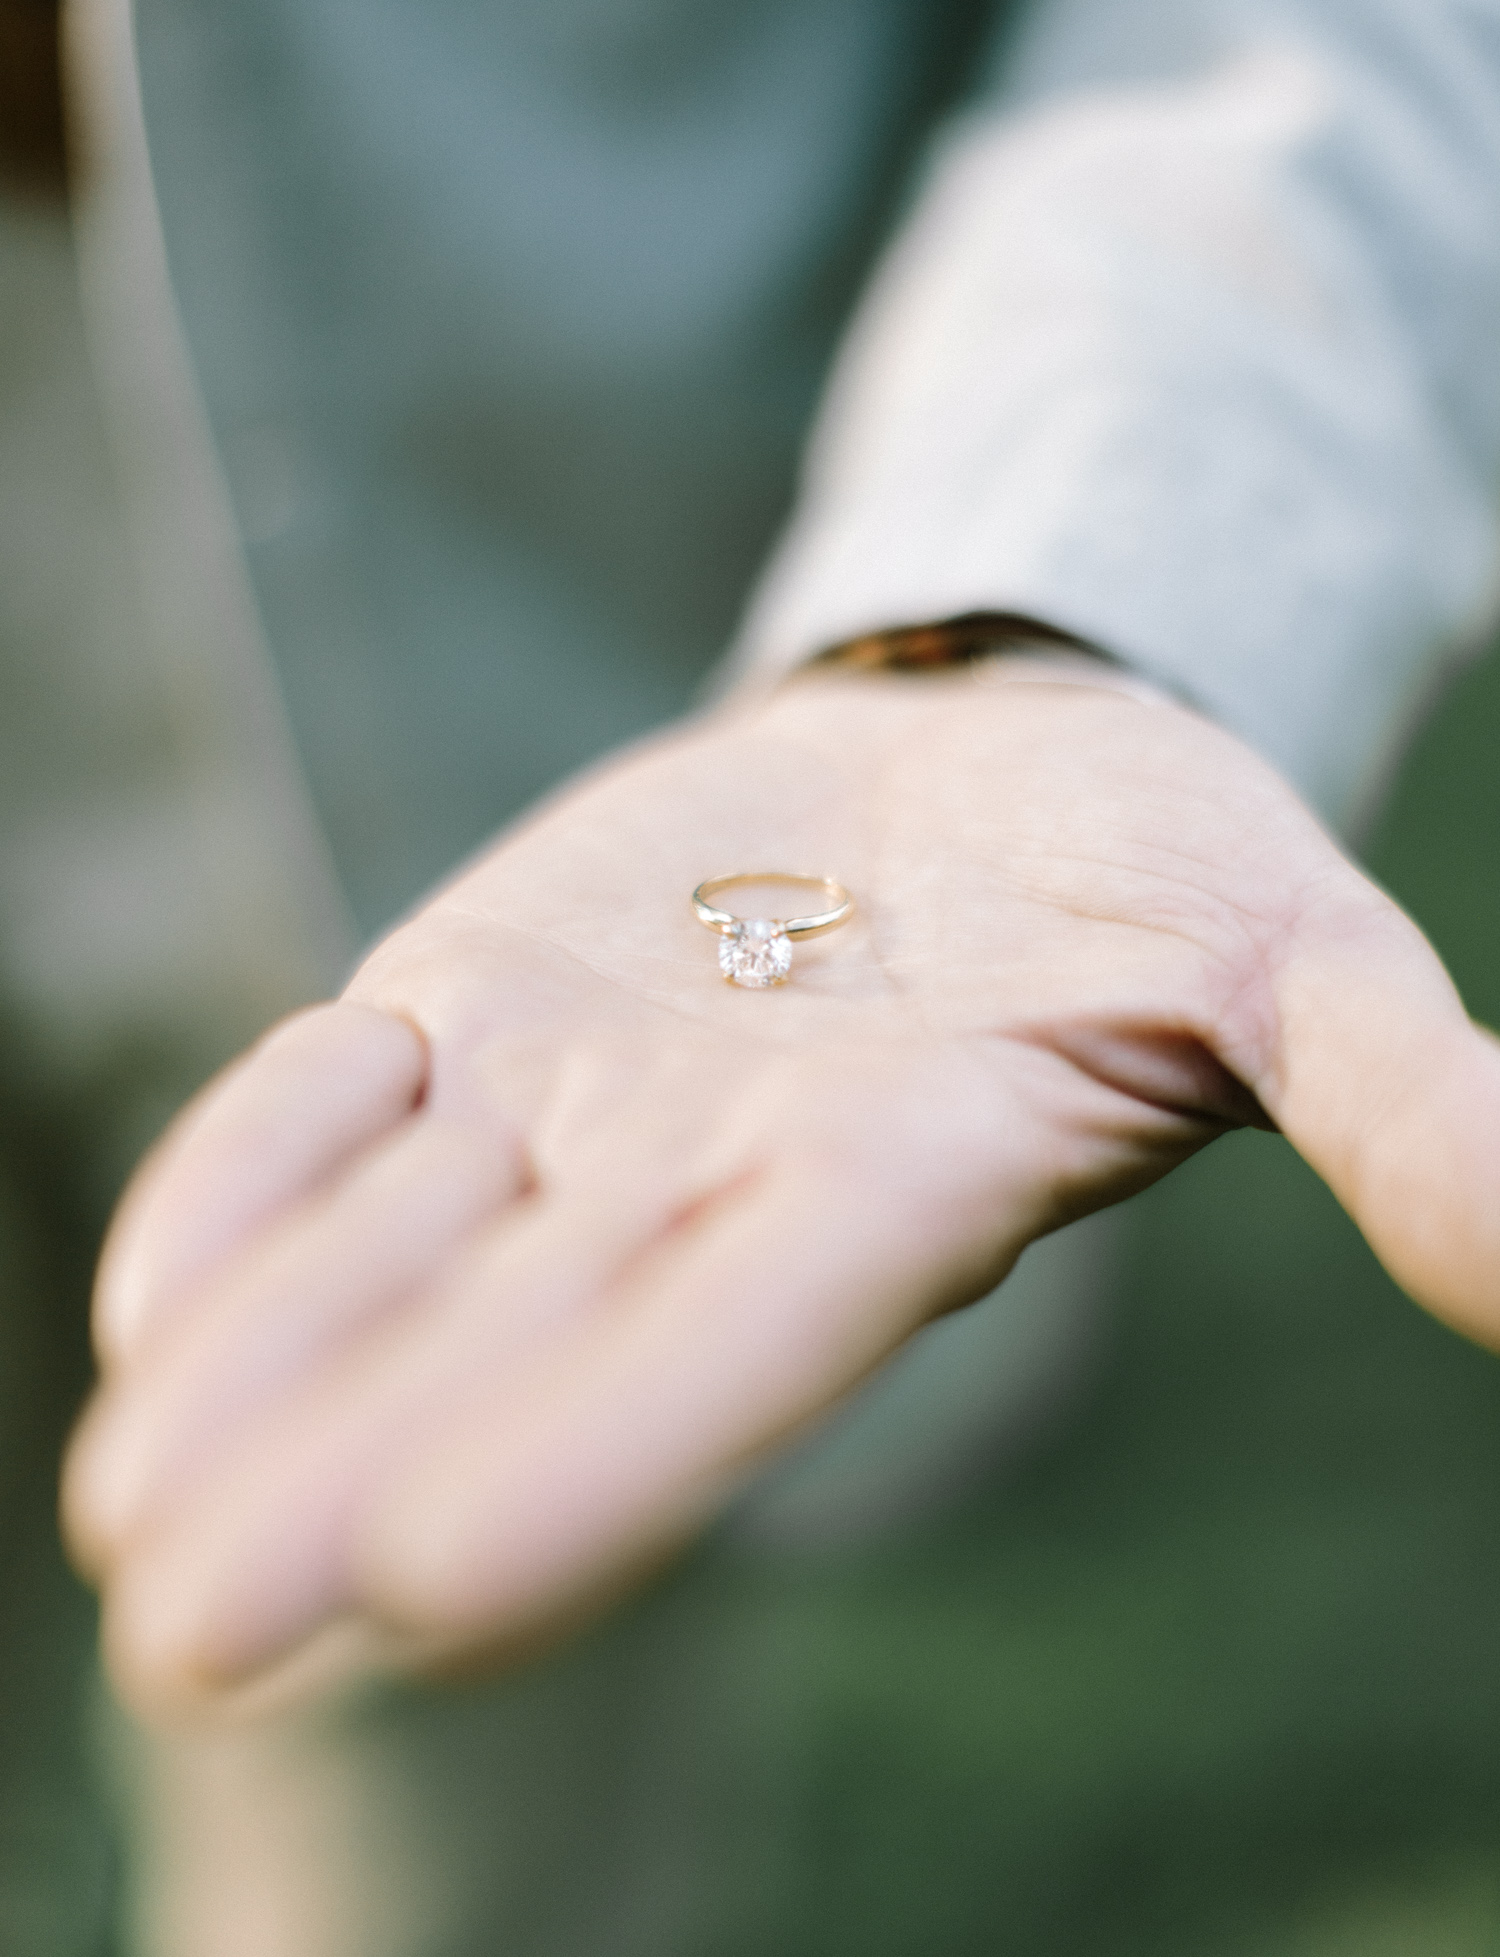 a solitaire round diamond engagement ring in yellow gold rests in a man's palm during engagement photography in Southeast Michigan